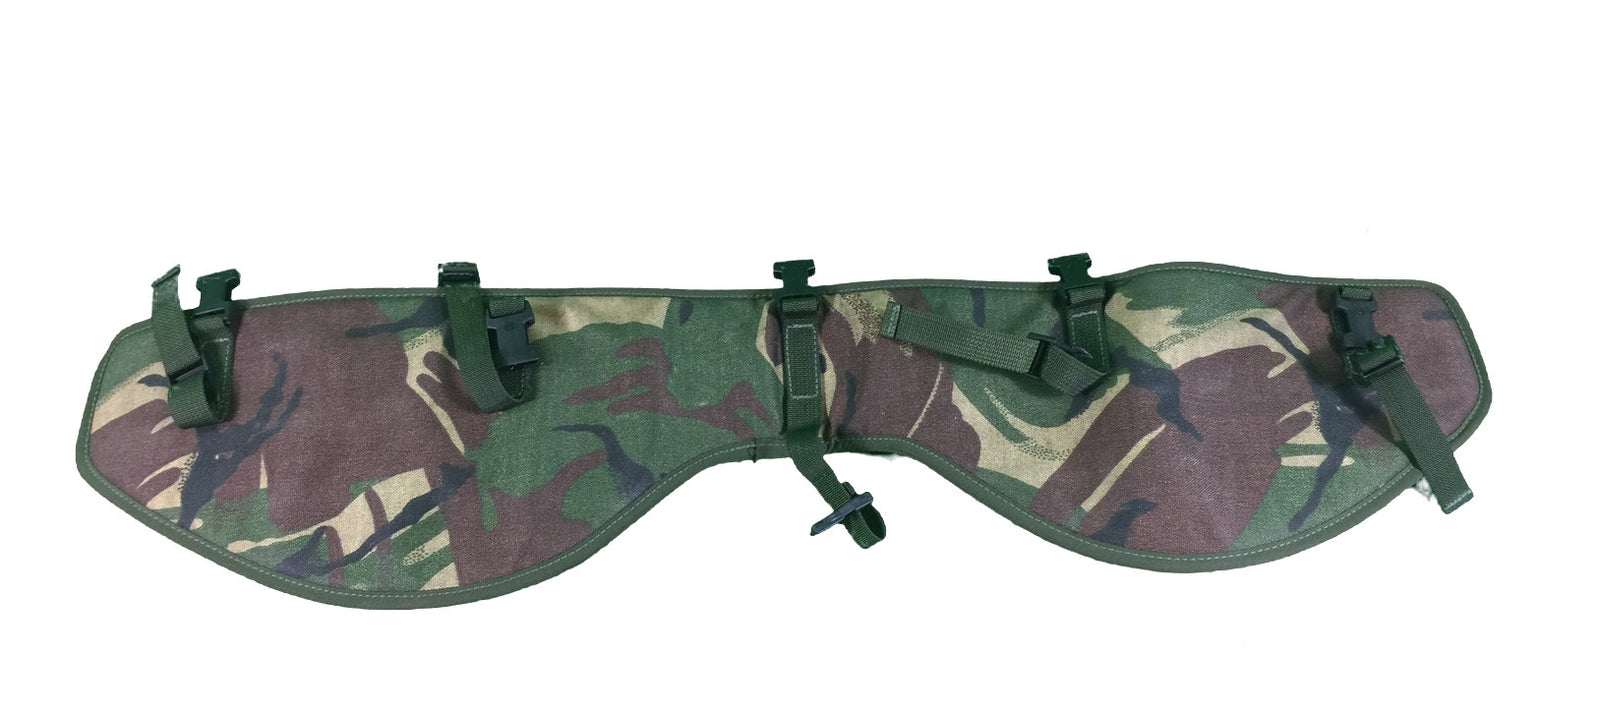 British army surplus DPM camouflage PLCE hip protection / padding